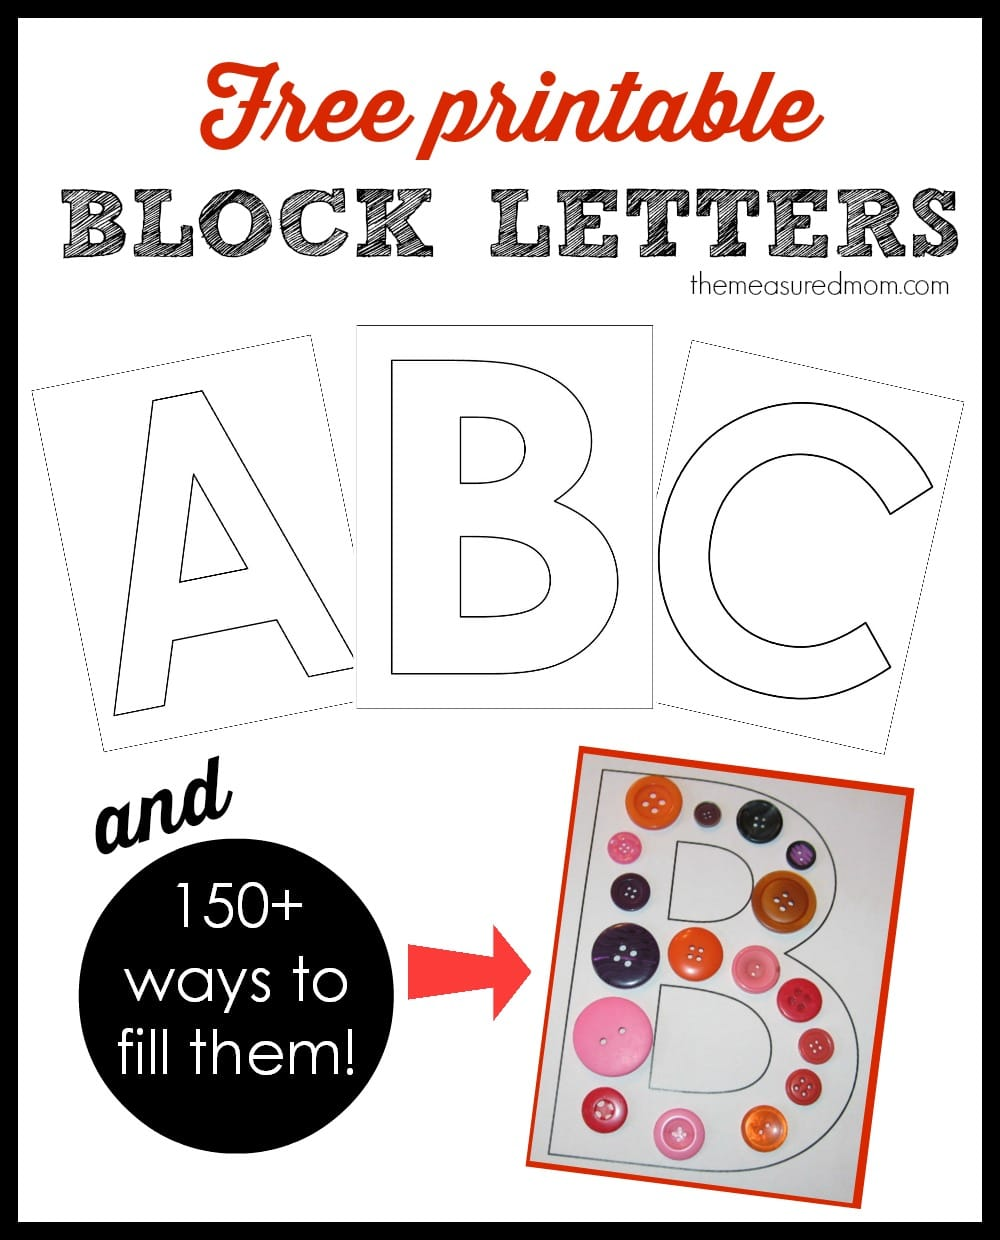 image about Free Printable Block Letters called Printable block letters and previously mentioned 150 methods toward fill them